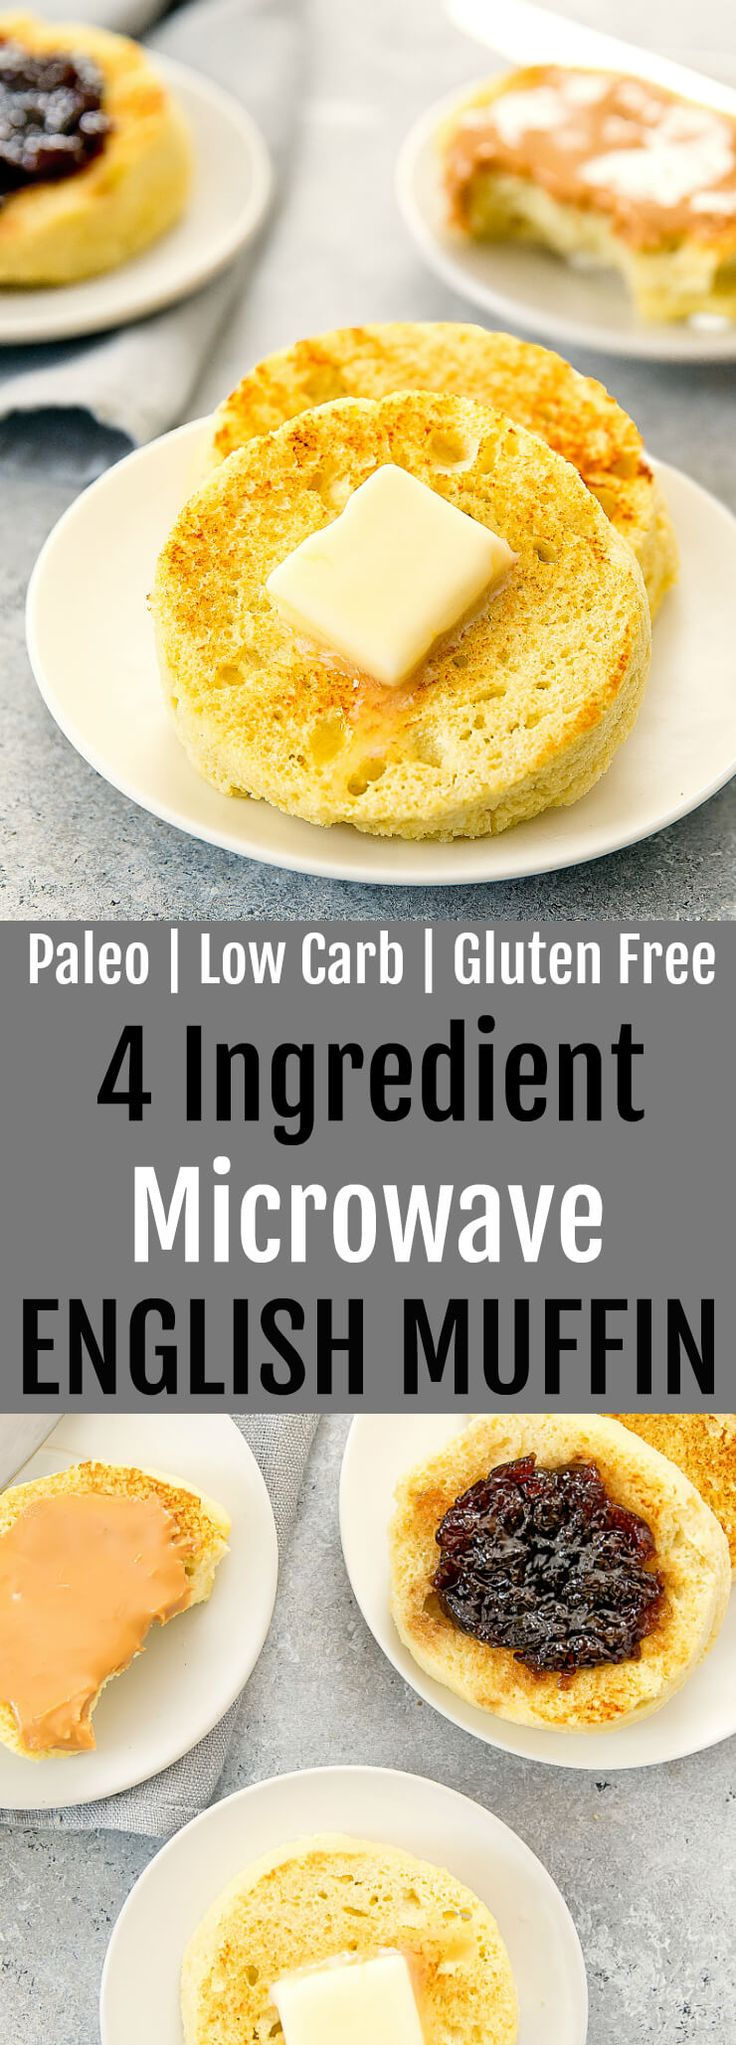 4 Ingredient Microwave English Muffin. Paleo, low carb and gluten free. This bread cooks in less than 2 minutes!